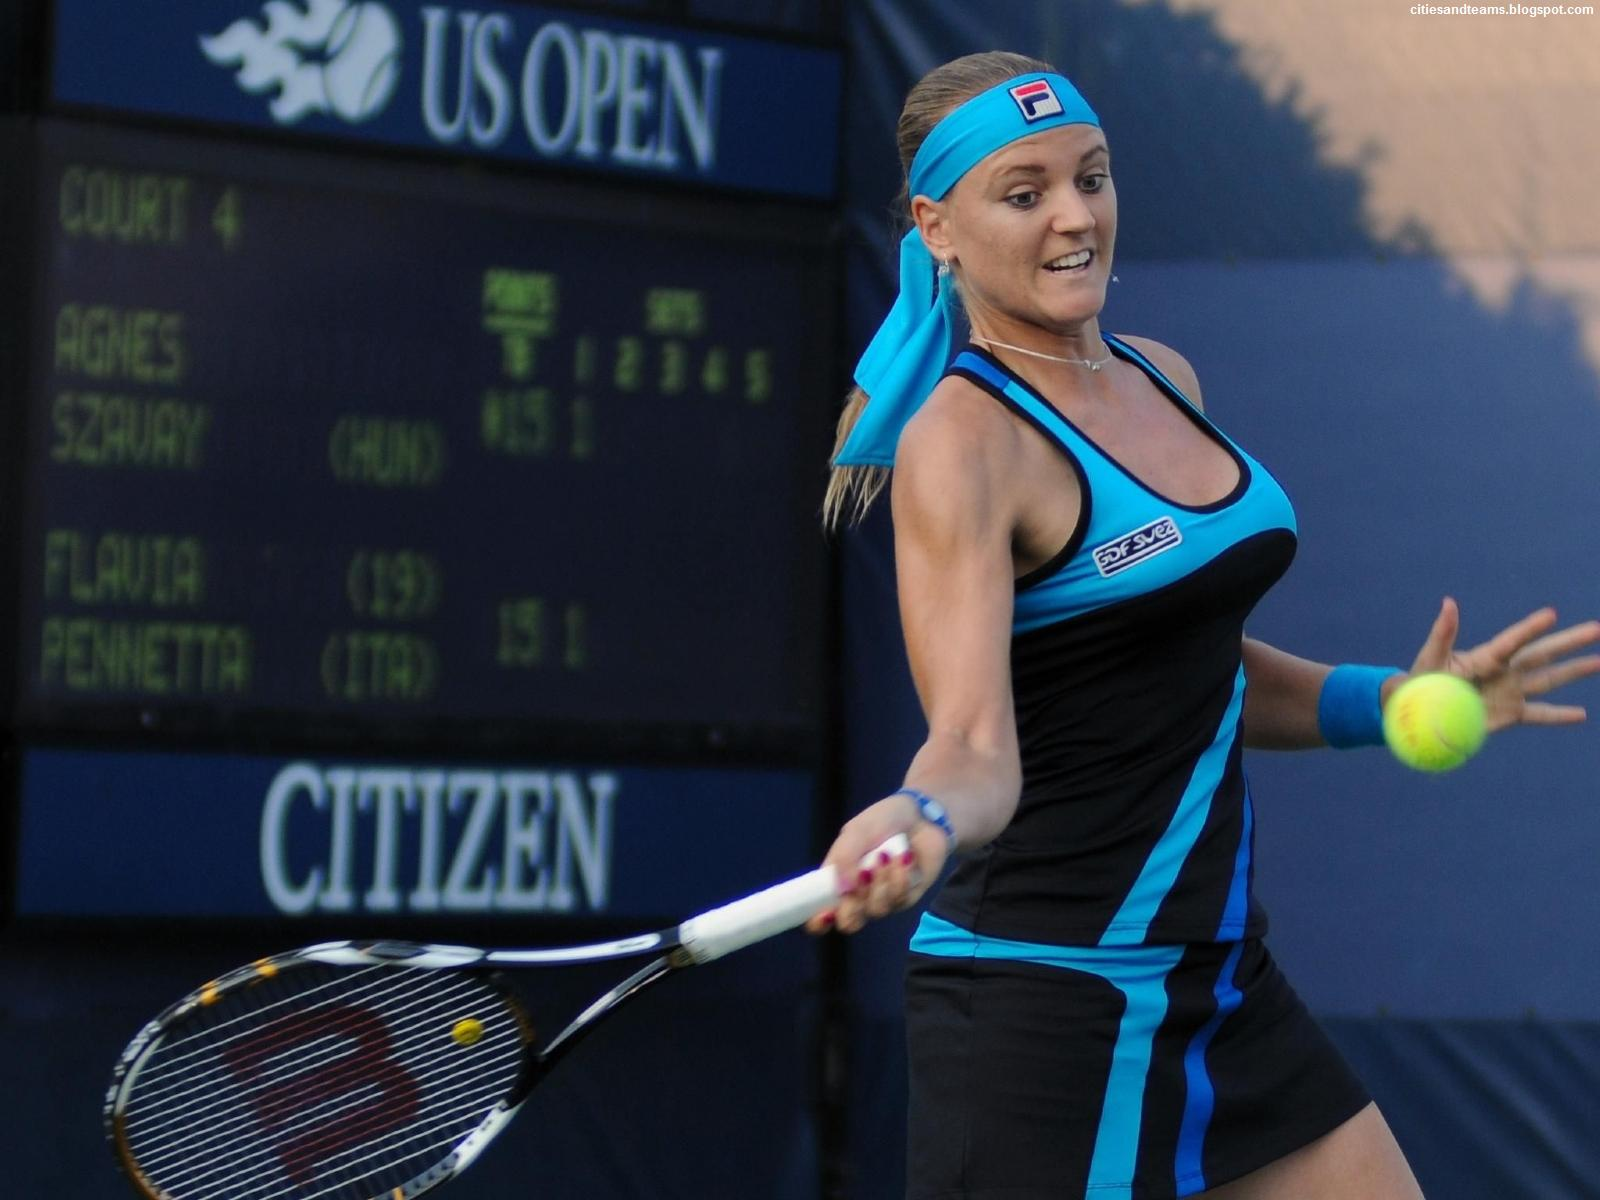 http://1.bp.blogspot.com/-V1MqYVCU5ok/UH2c4ZLCXOI/AAAAAAAAIGM/JGHCB1s7Zwk/s1600/Agnes_Szavay_Hungarian_Cute_Pretty_Blonde_Tennis_Player_Hd_Desktop_Wallpaper_citiesandteams.blogspot.com.jpg